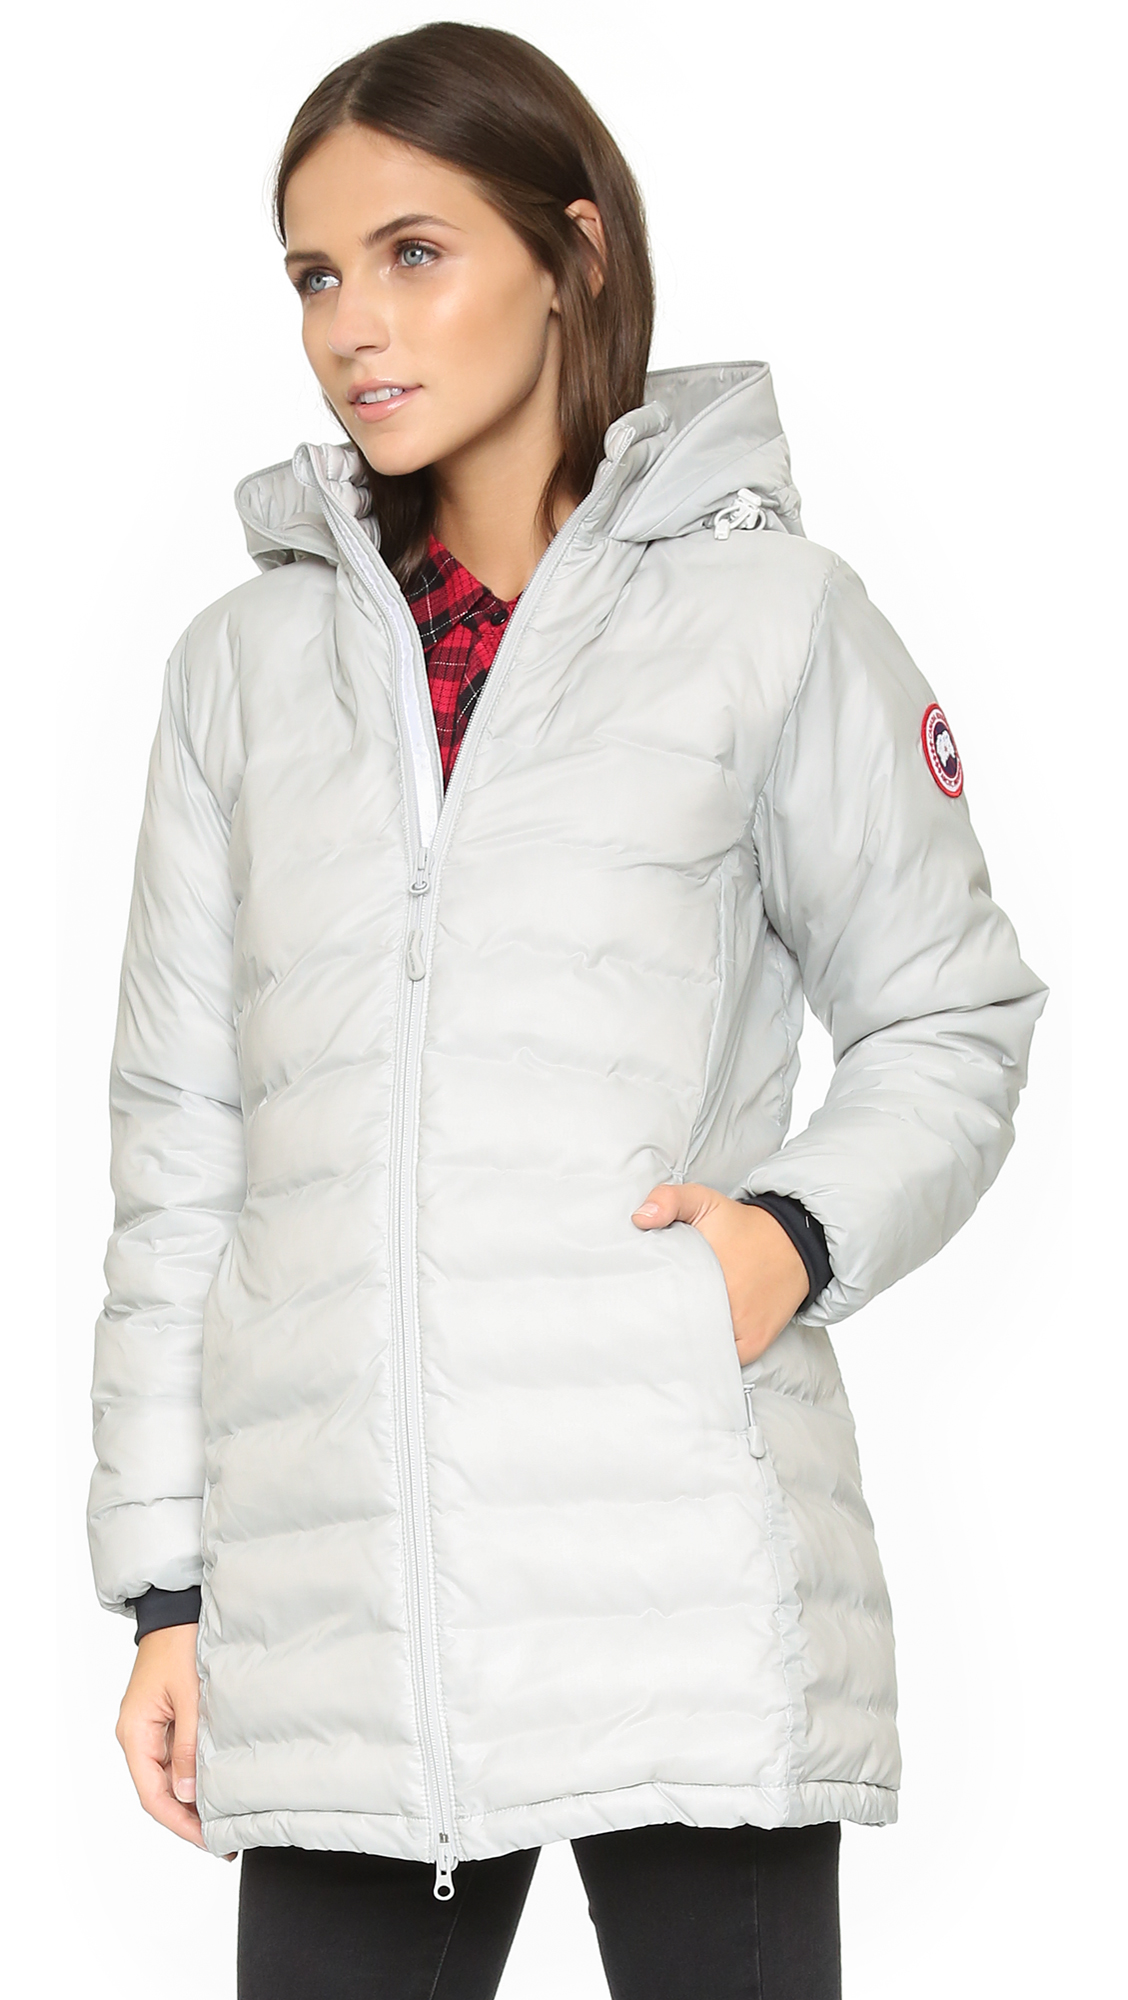 Canada Goose chateau parka sale store - Canada Goose Camp Hooded Jacket - Silverbirch - Designer Jacket ...